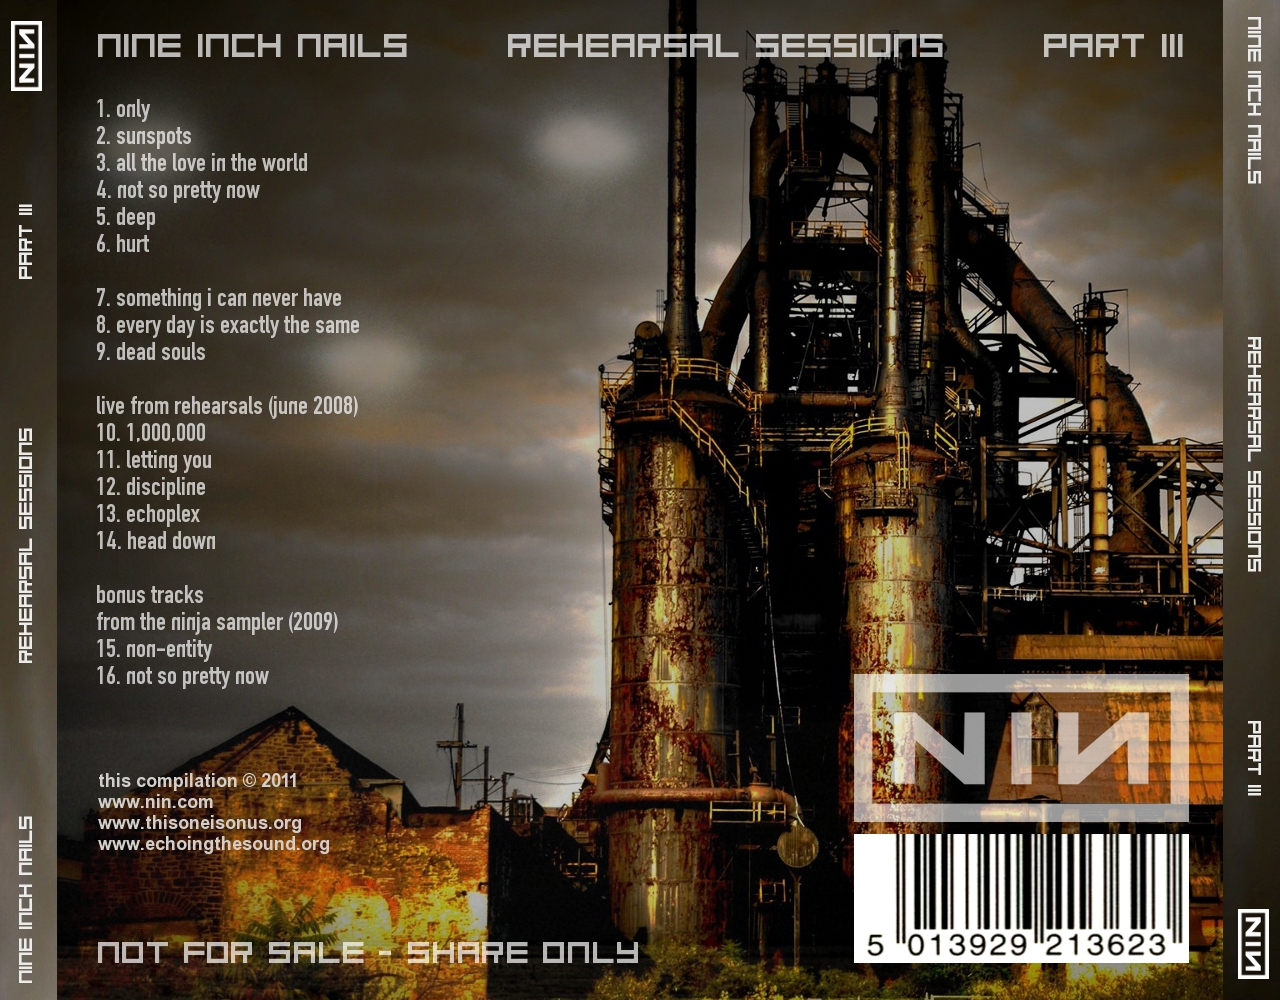 DARK CIRCLE ROOM: RE-UPLOAD: Nine Inch Nails - Rehearsal Sessions (MP3)